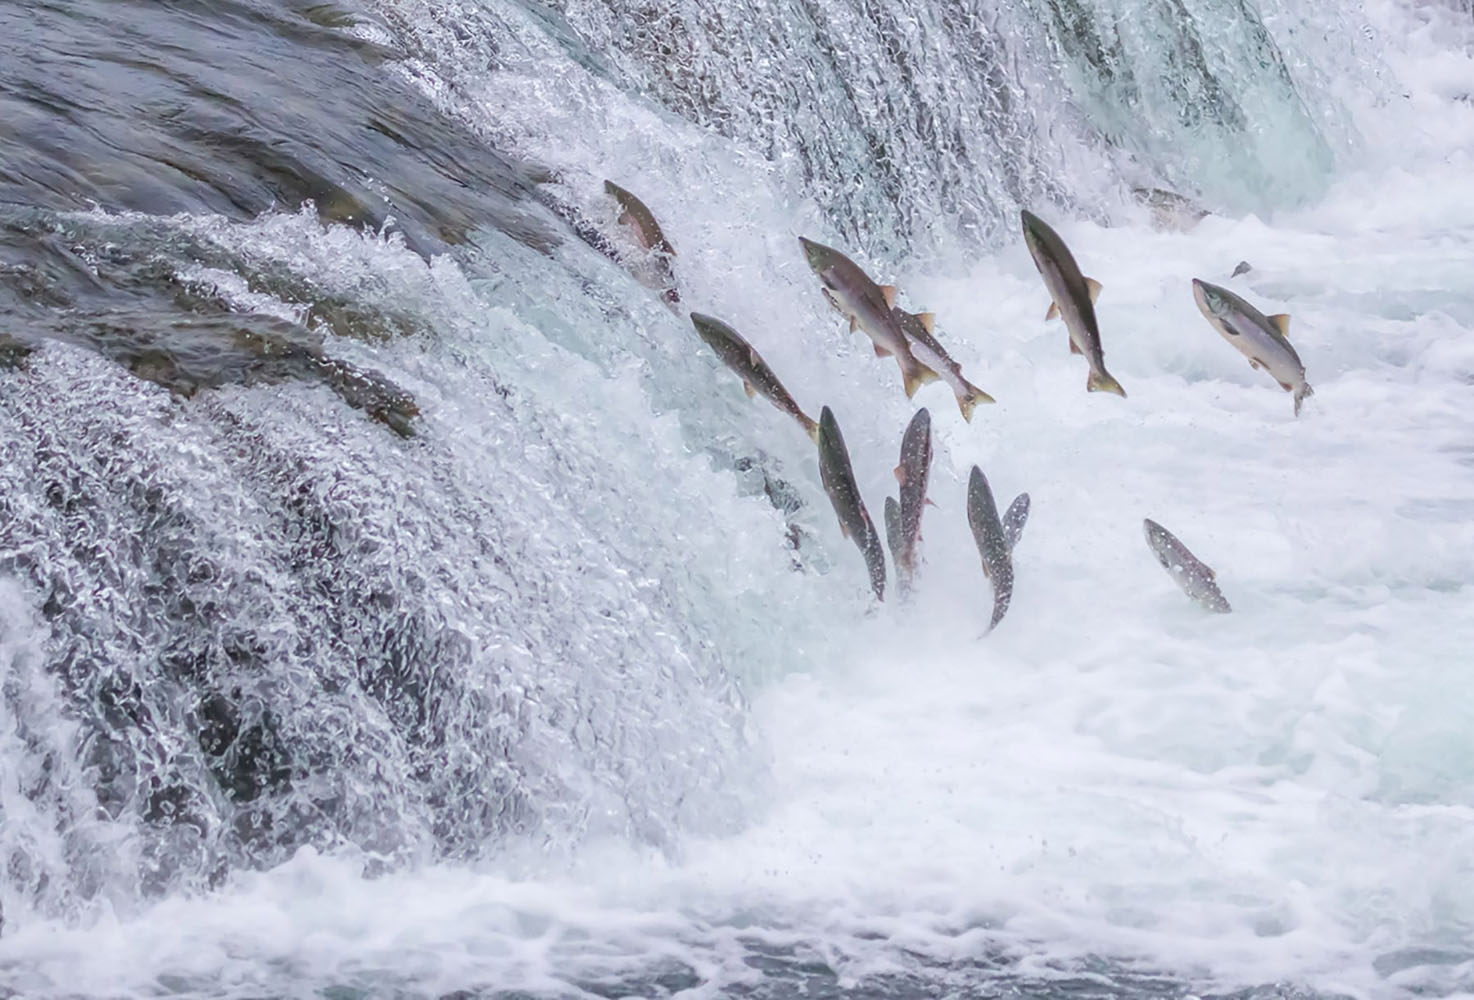 Salmon Jumping Up the falls in Alaska